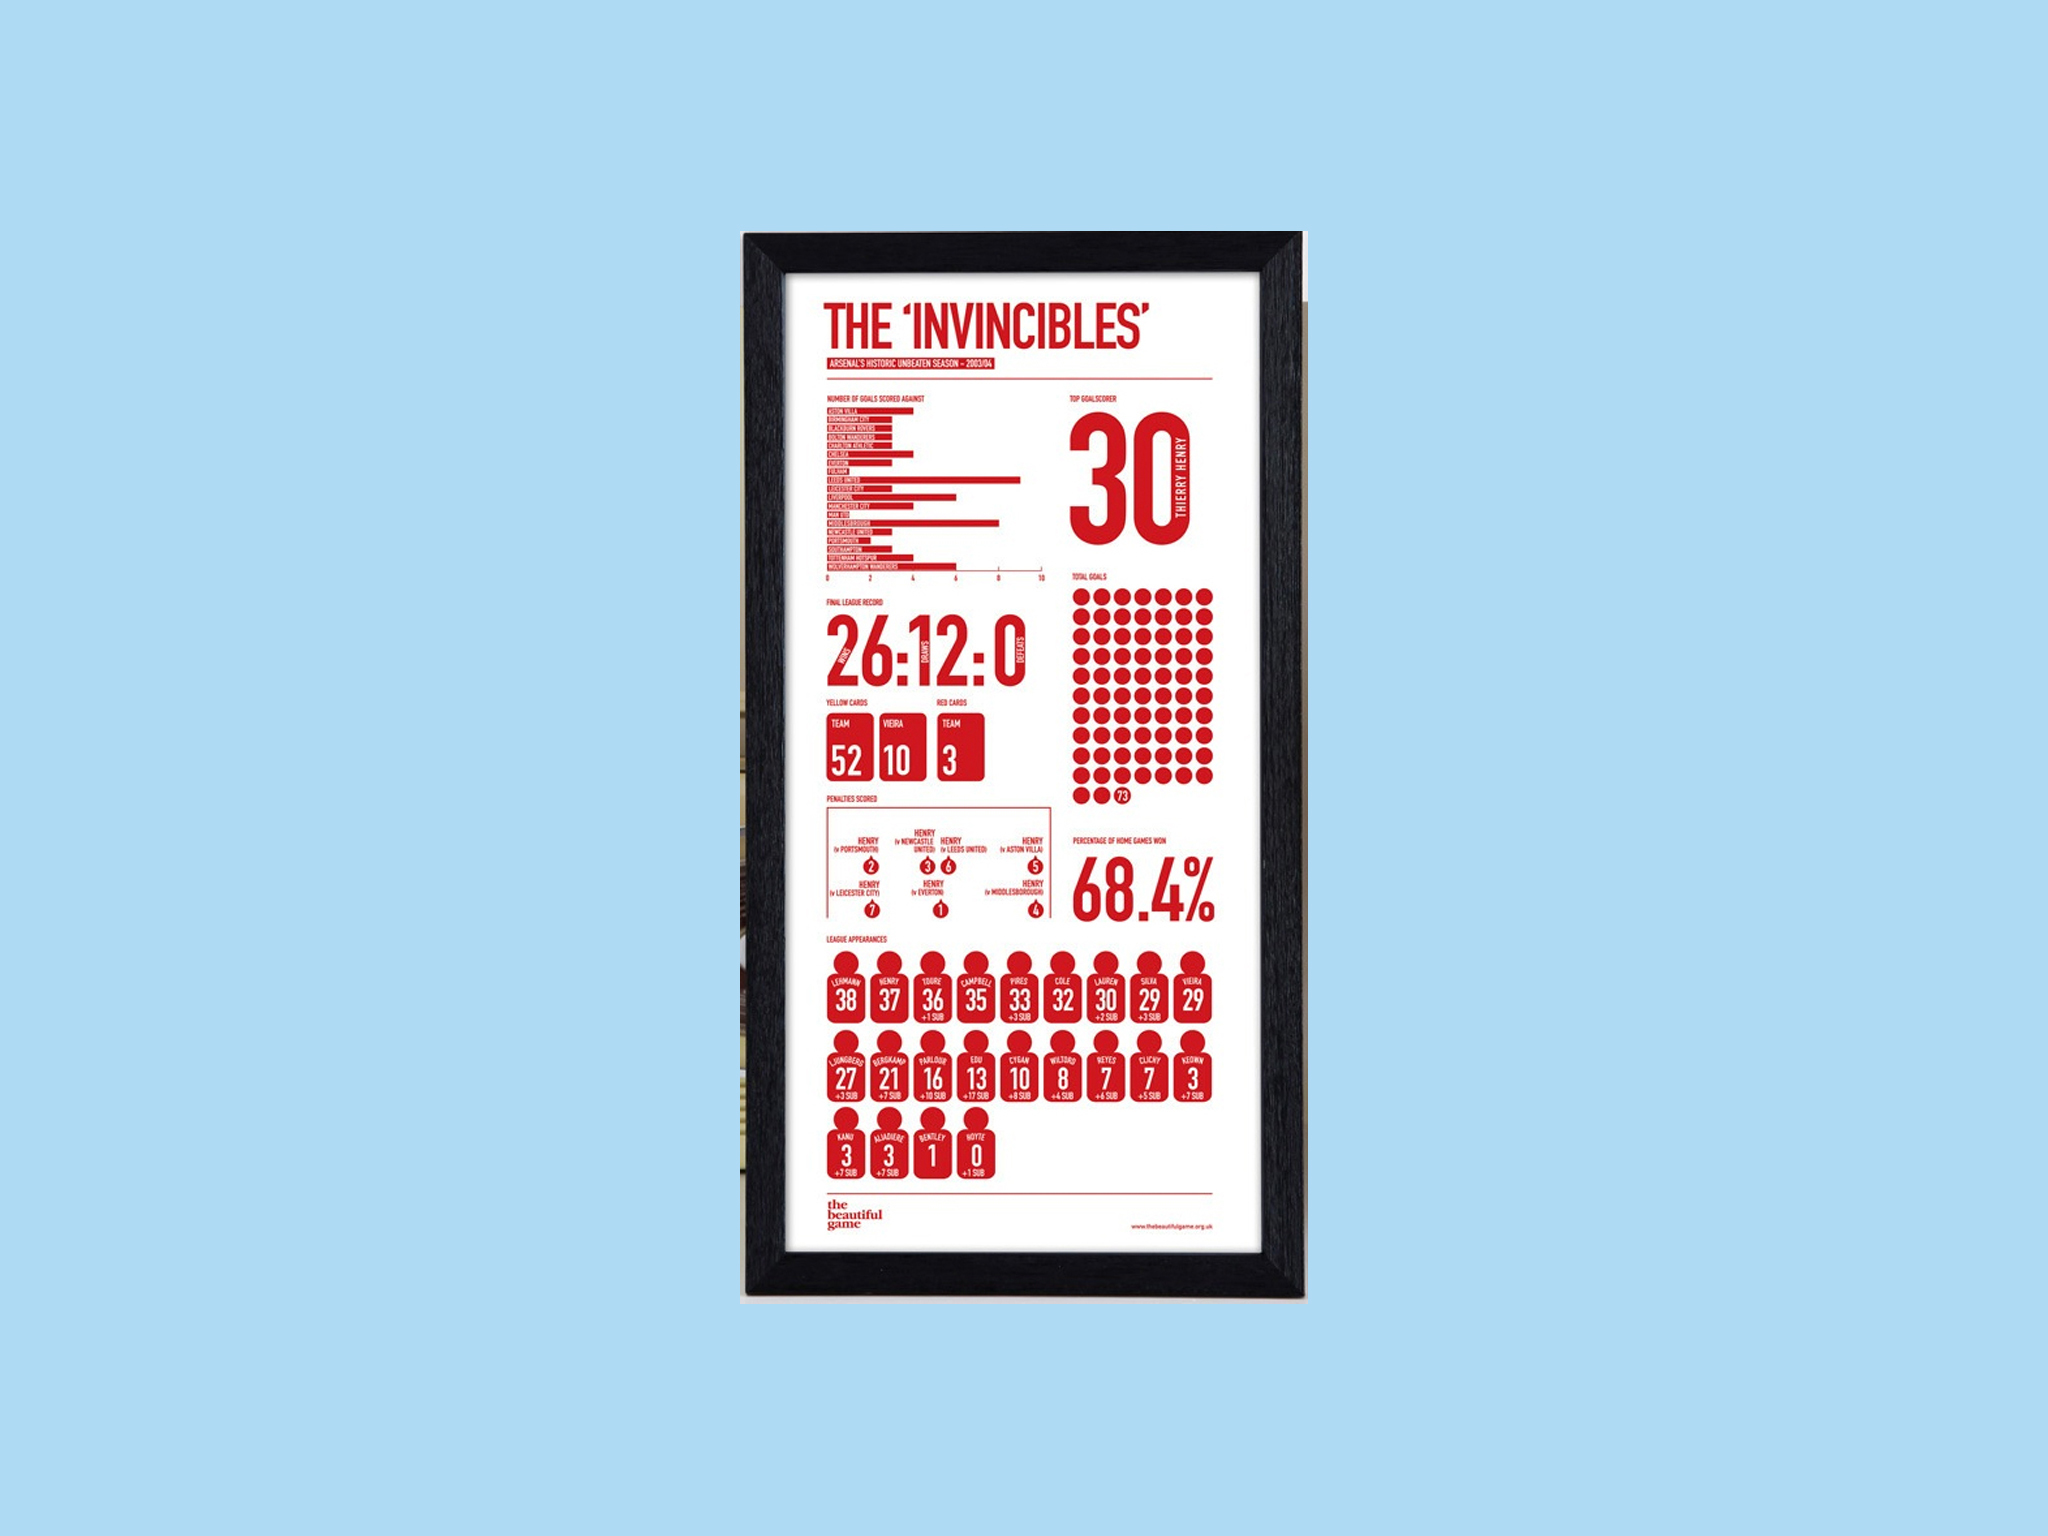 Christmas gift guide: sports - Arsenal statistics screen print